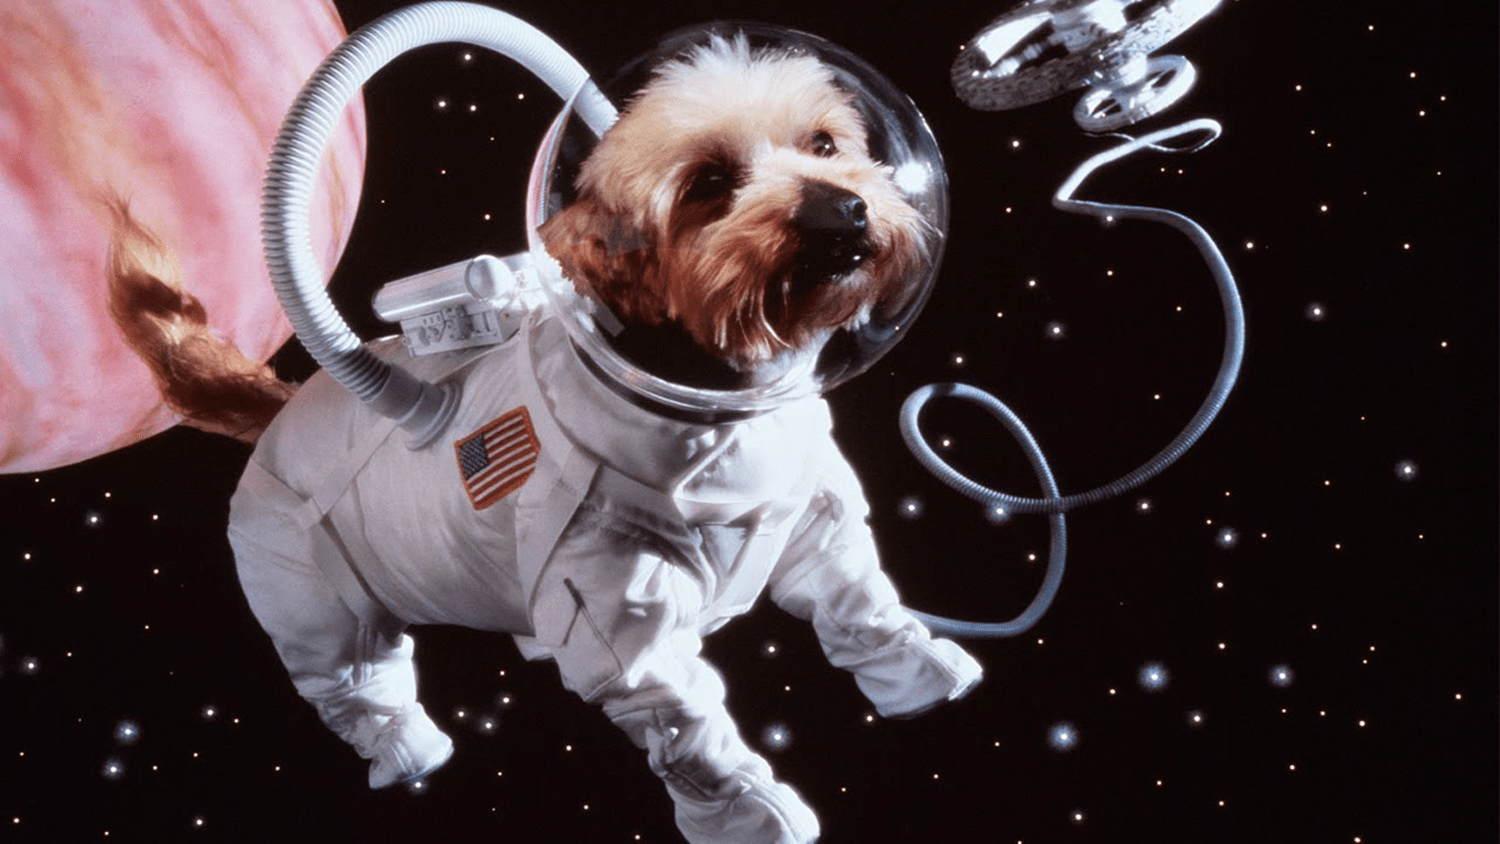 The Best Star Wars Names for Dogs